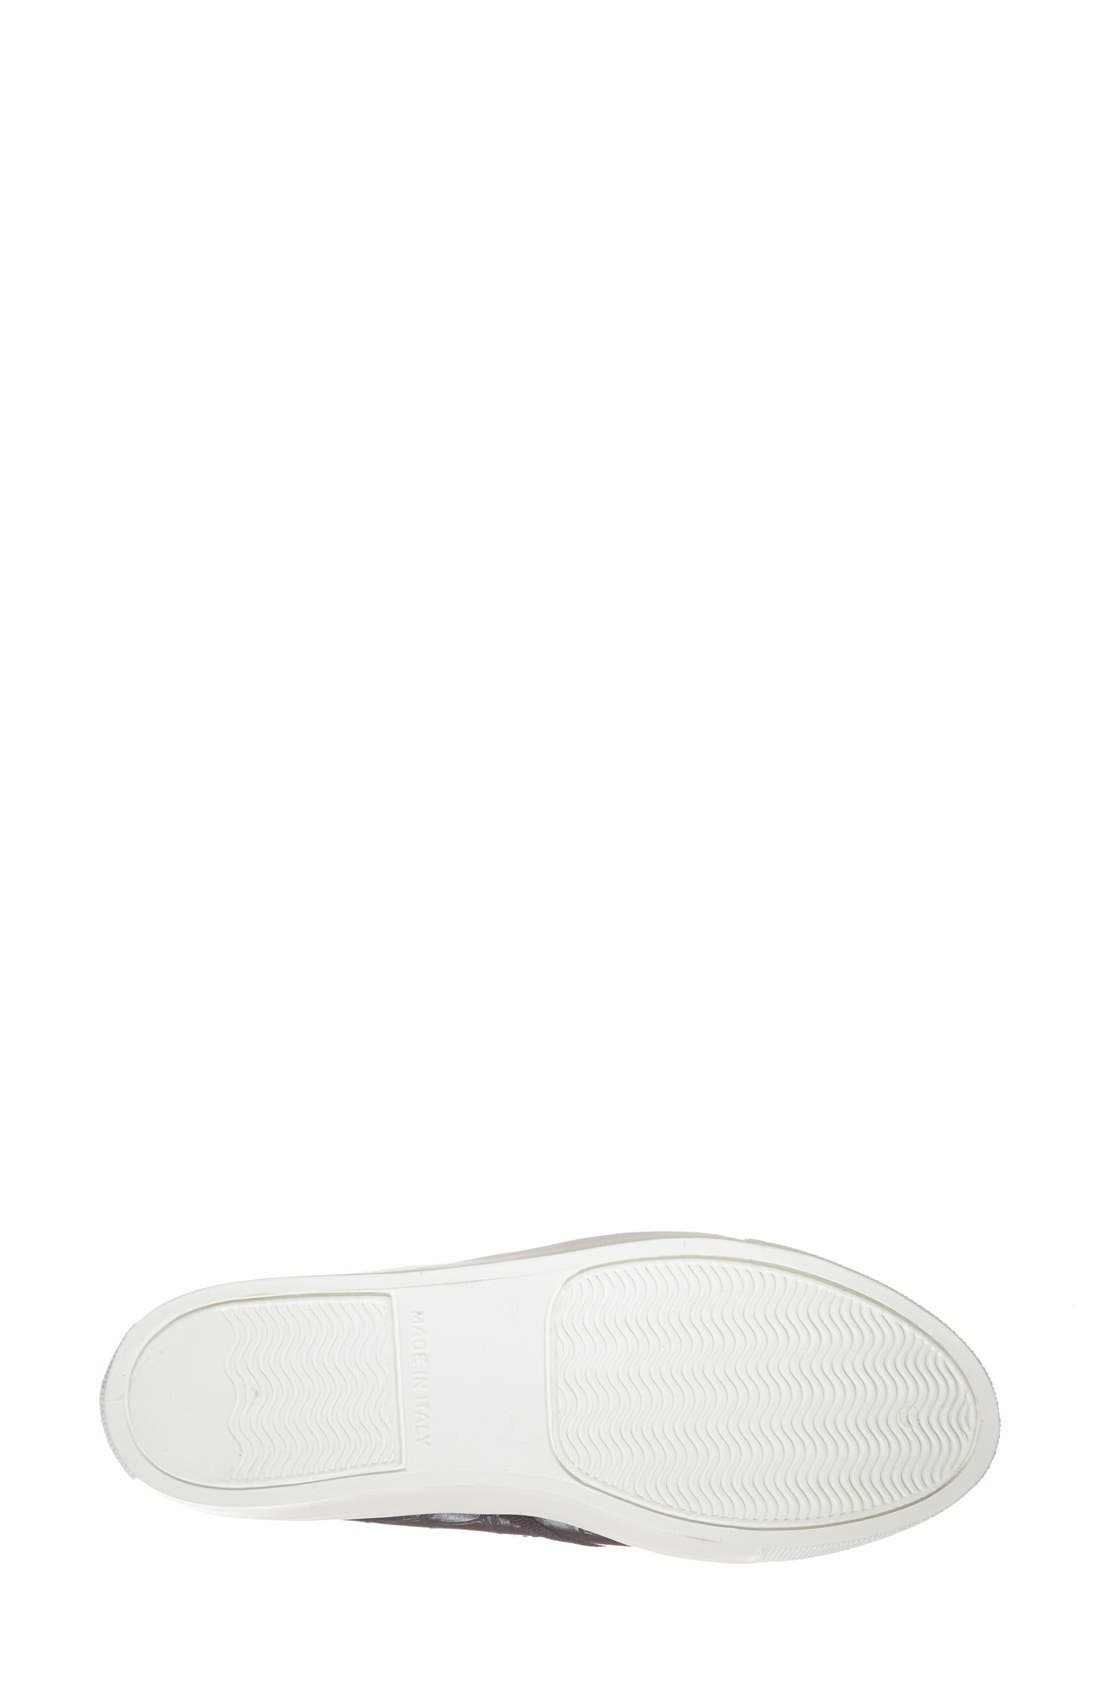 TOPSHOP, 'Tipi' Slip-On, Alternate thumbnail 2, color, 001